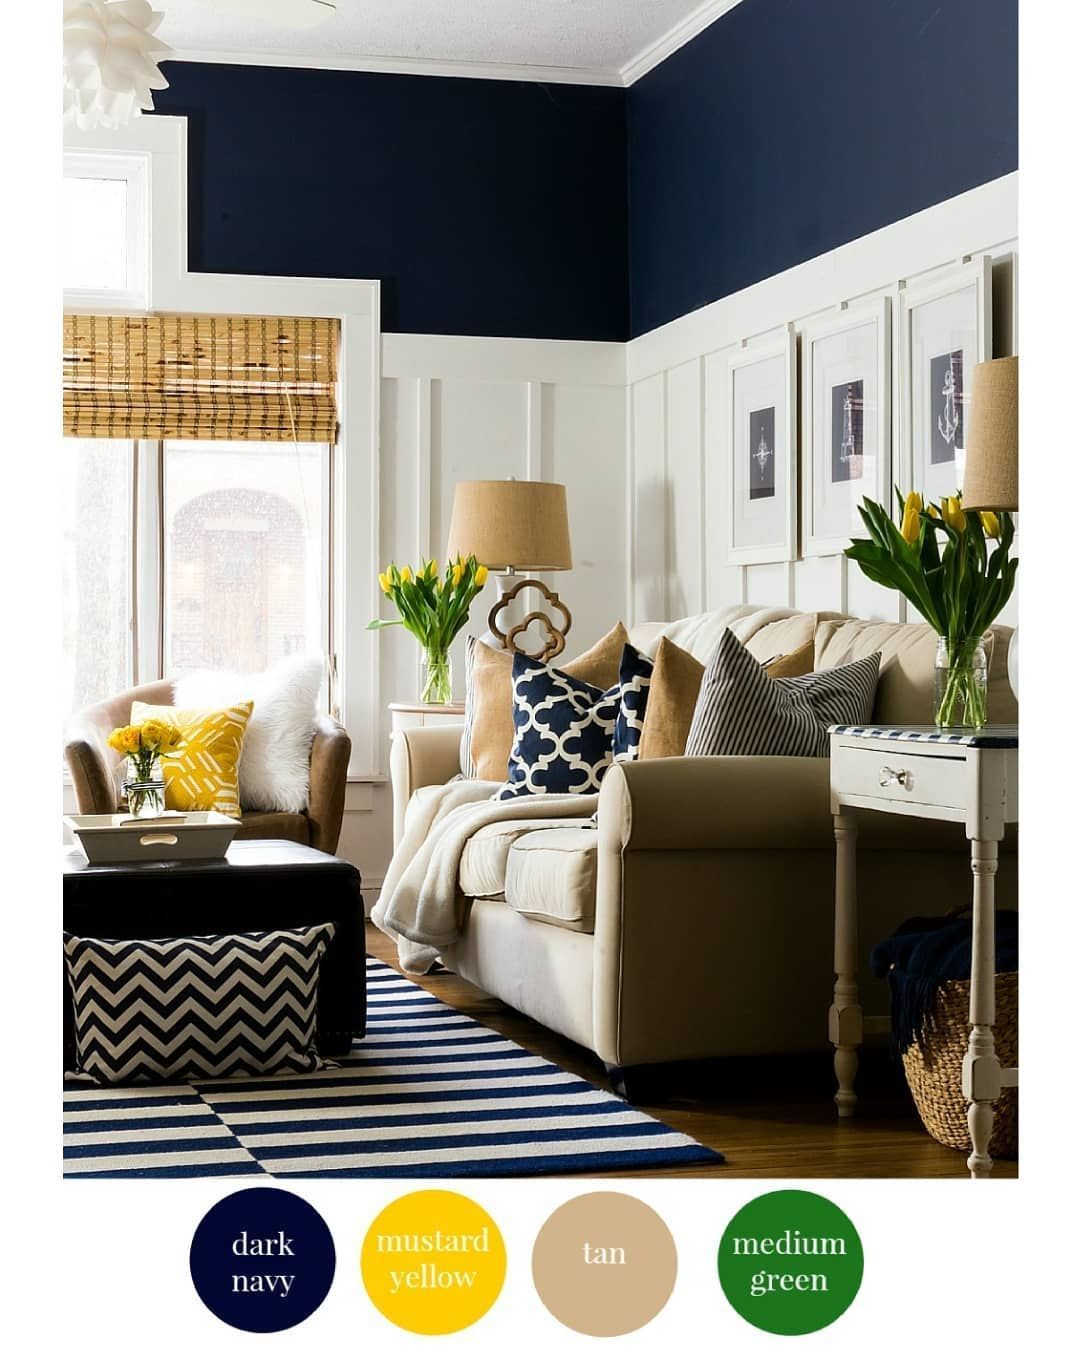 Color Combination No 3 Dark Navy Mustard Yellow Tan Green Color Colorscheme Navyblue Yello Summer Living Room Decor Summer Living Room Navy Living Rooms